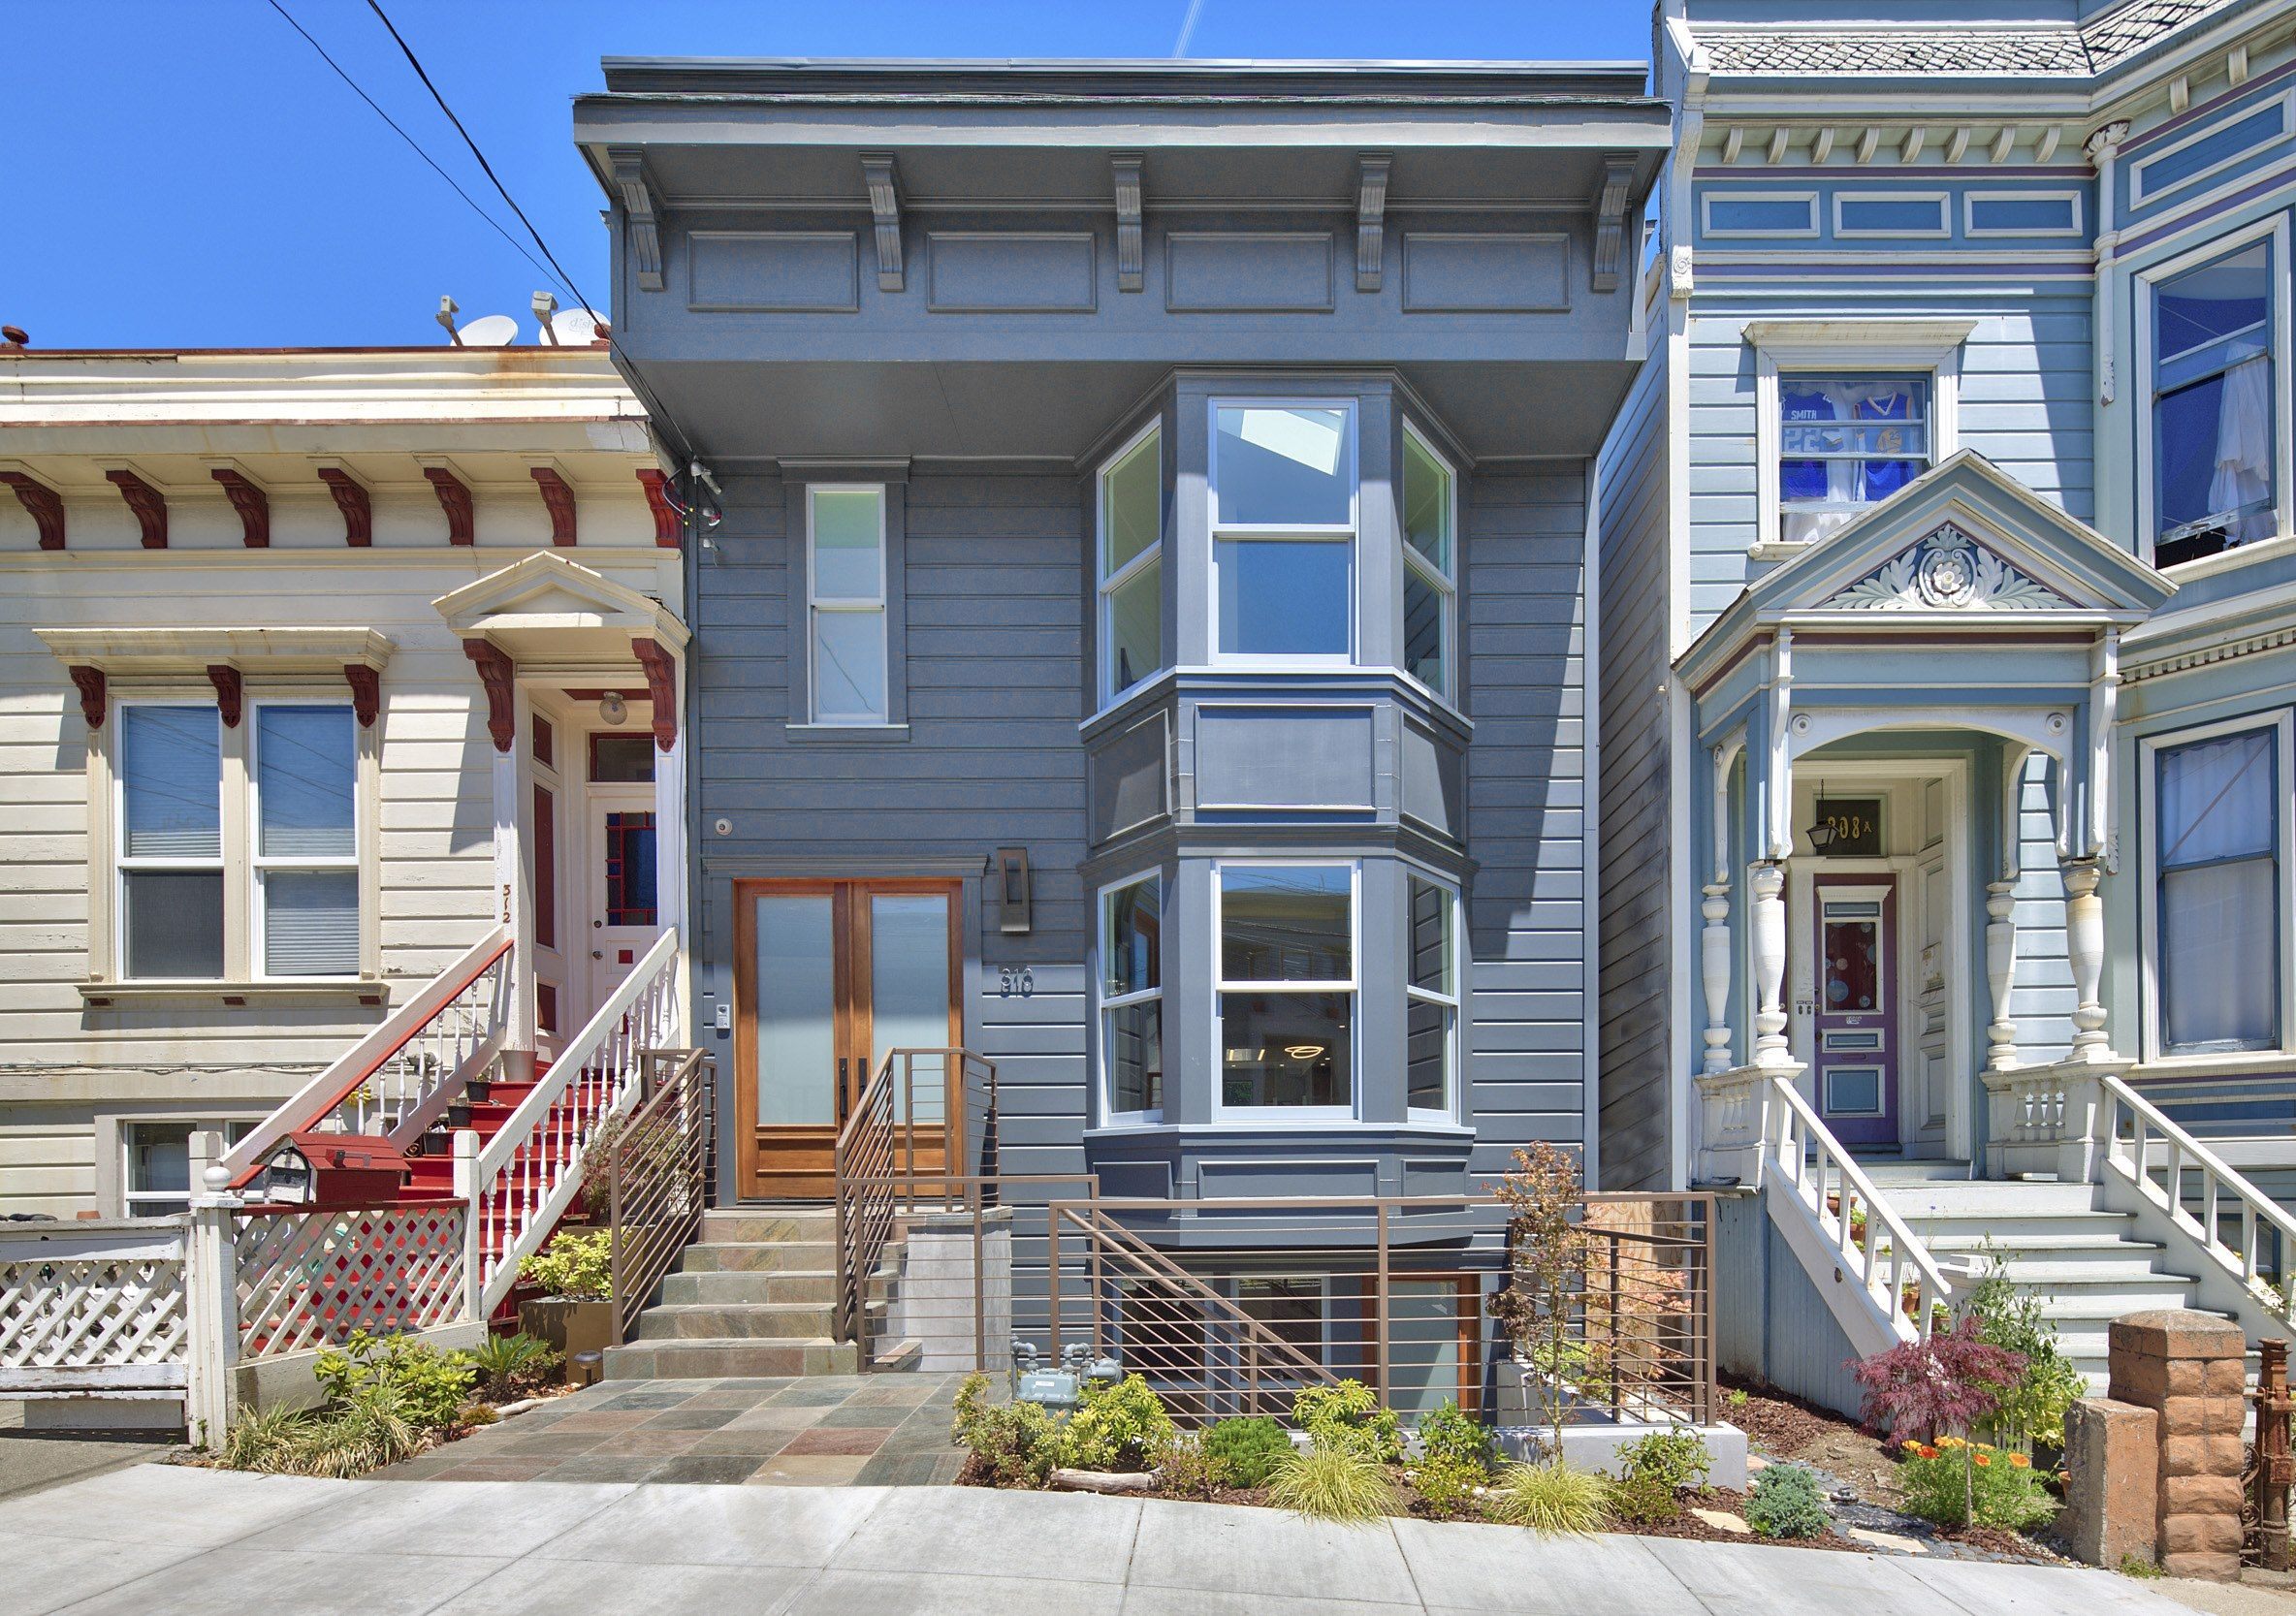 The home in San Francisco